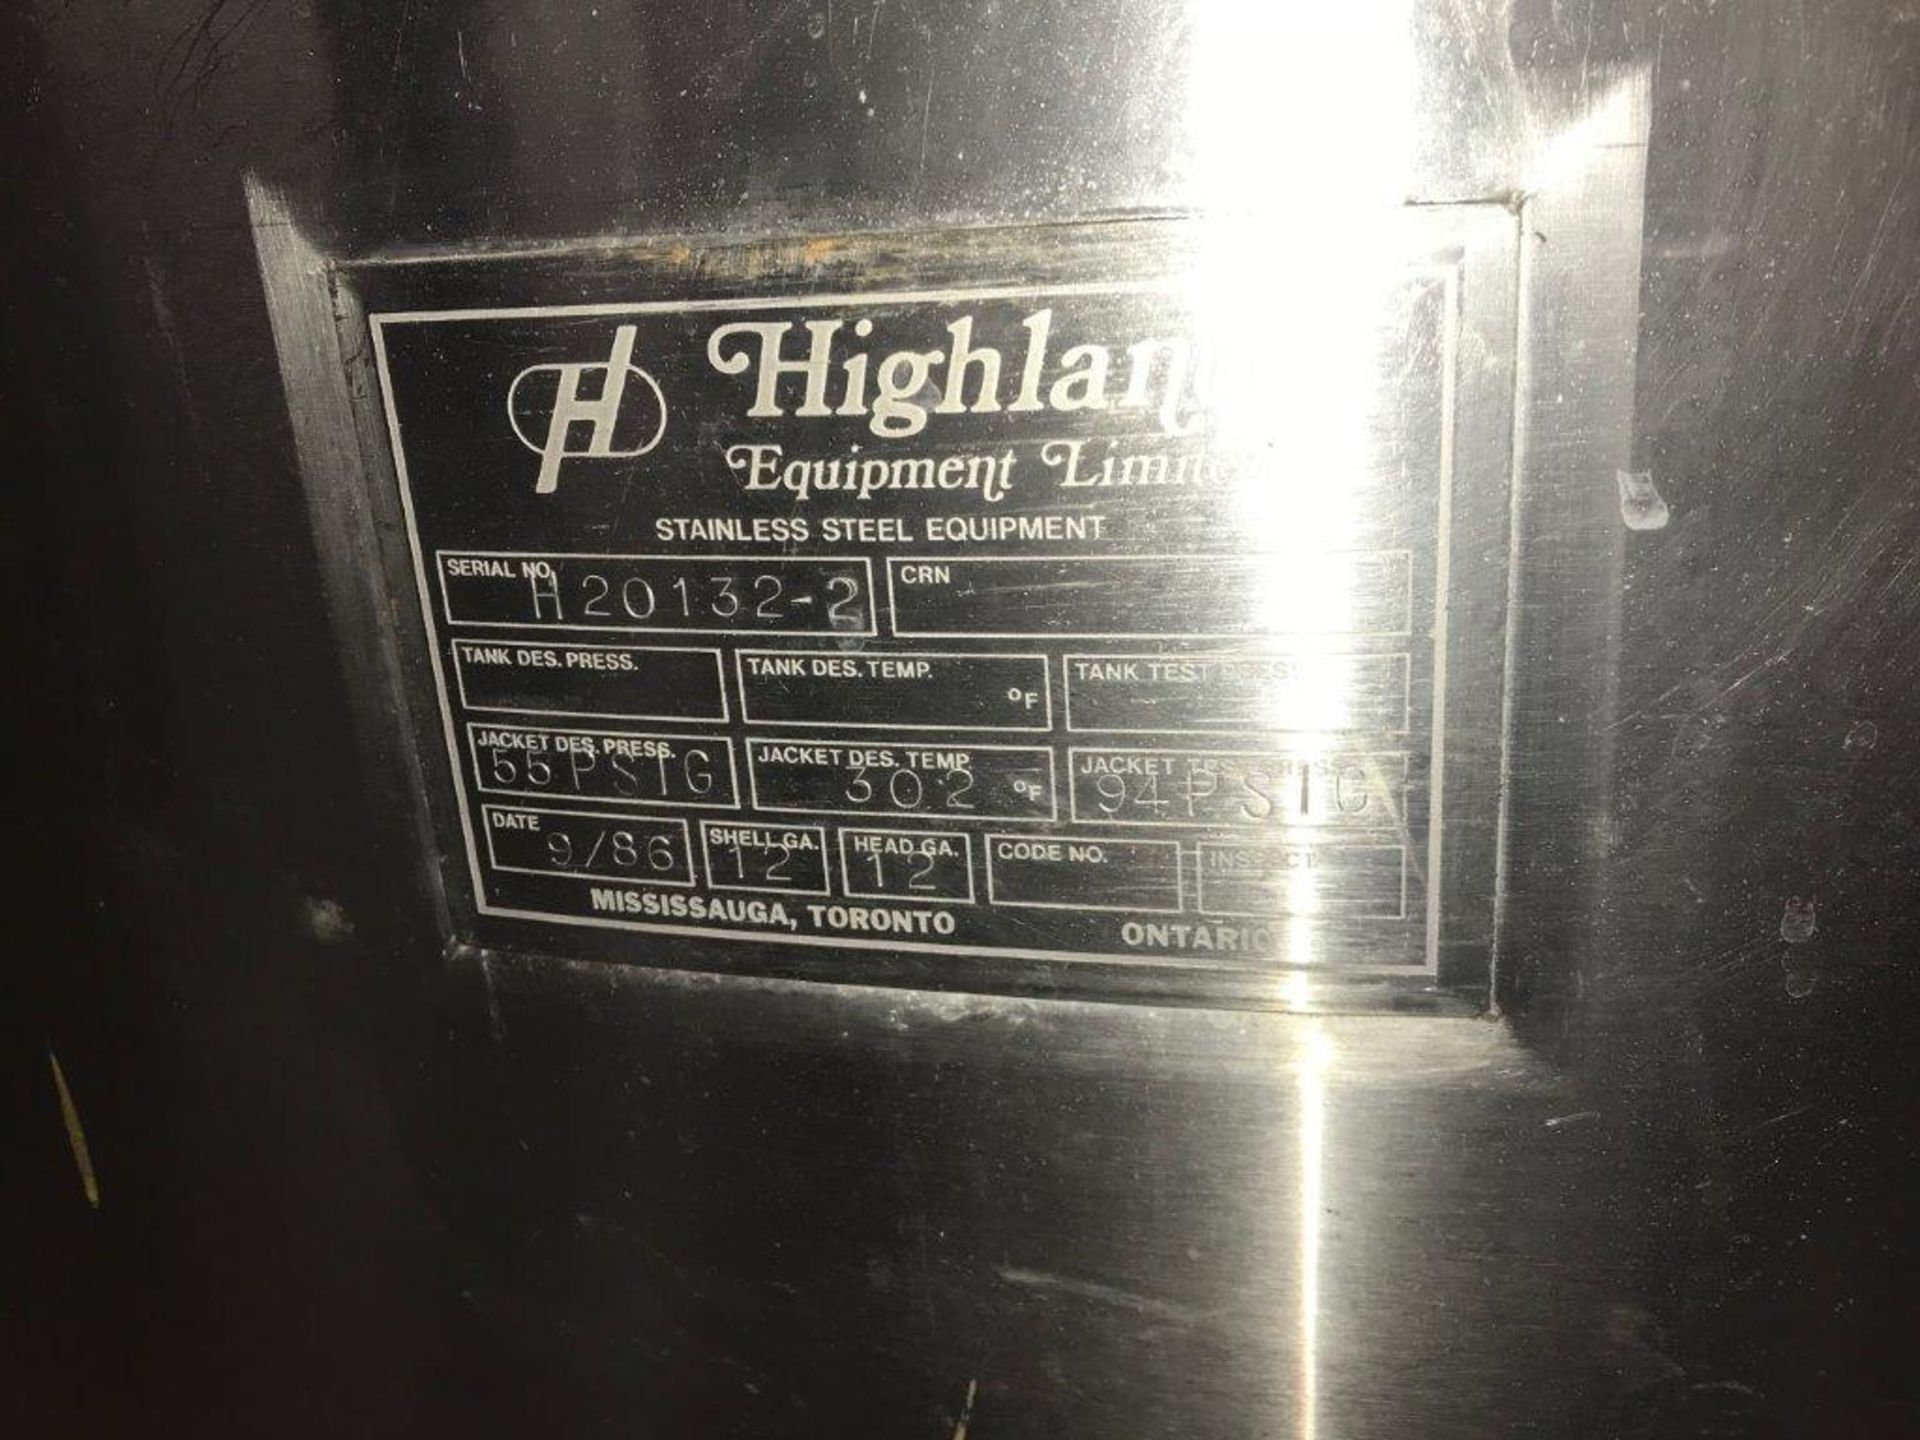 HIGHLAND 700 G JACKETED TANK WITH TOP MOUNTED LIGHTNIN MIXER.- LOCATION - AURORA, ONTARIO - Image 2 of 8